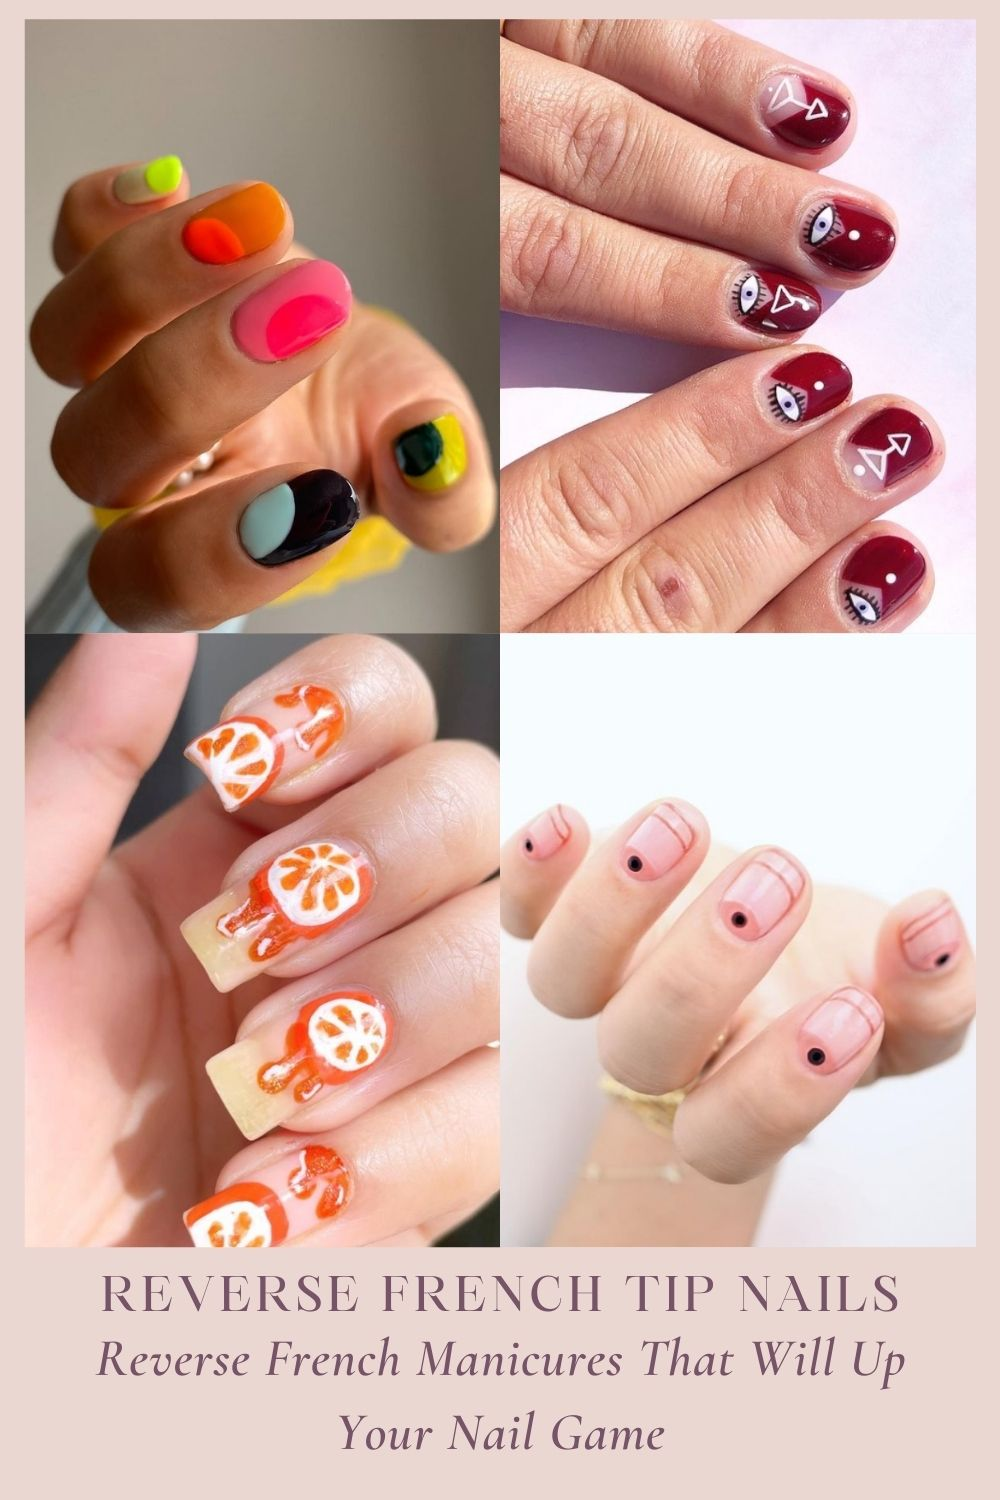 Reverse French tip nails | cute Nails to Recreate Your Favorite Looks